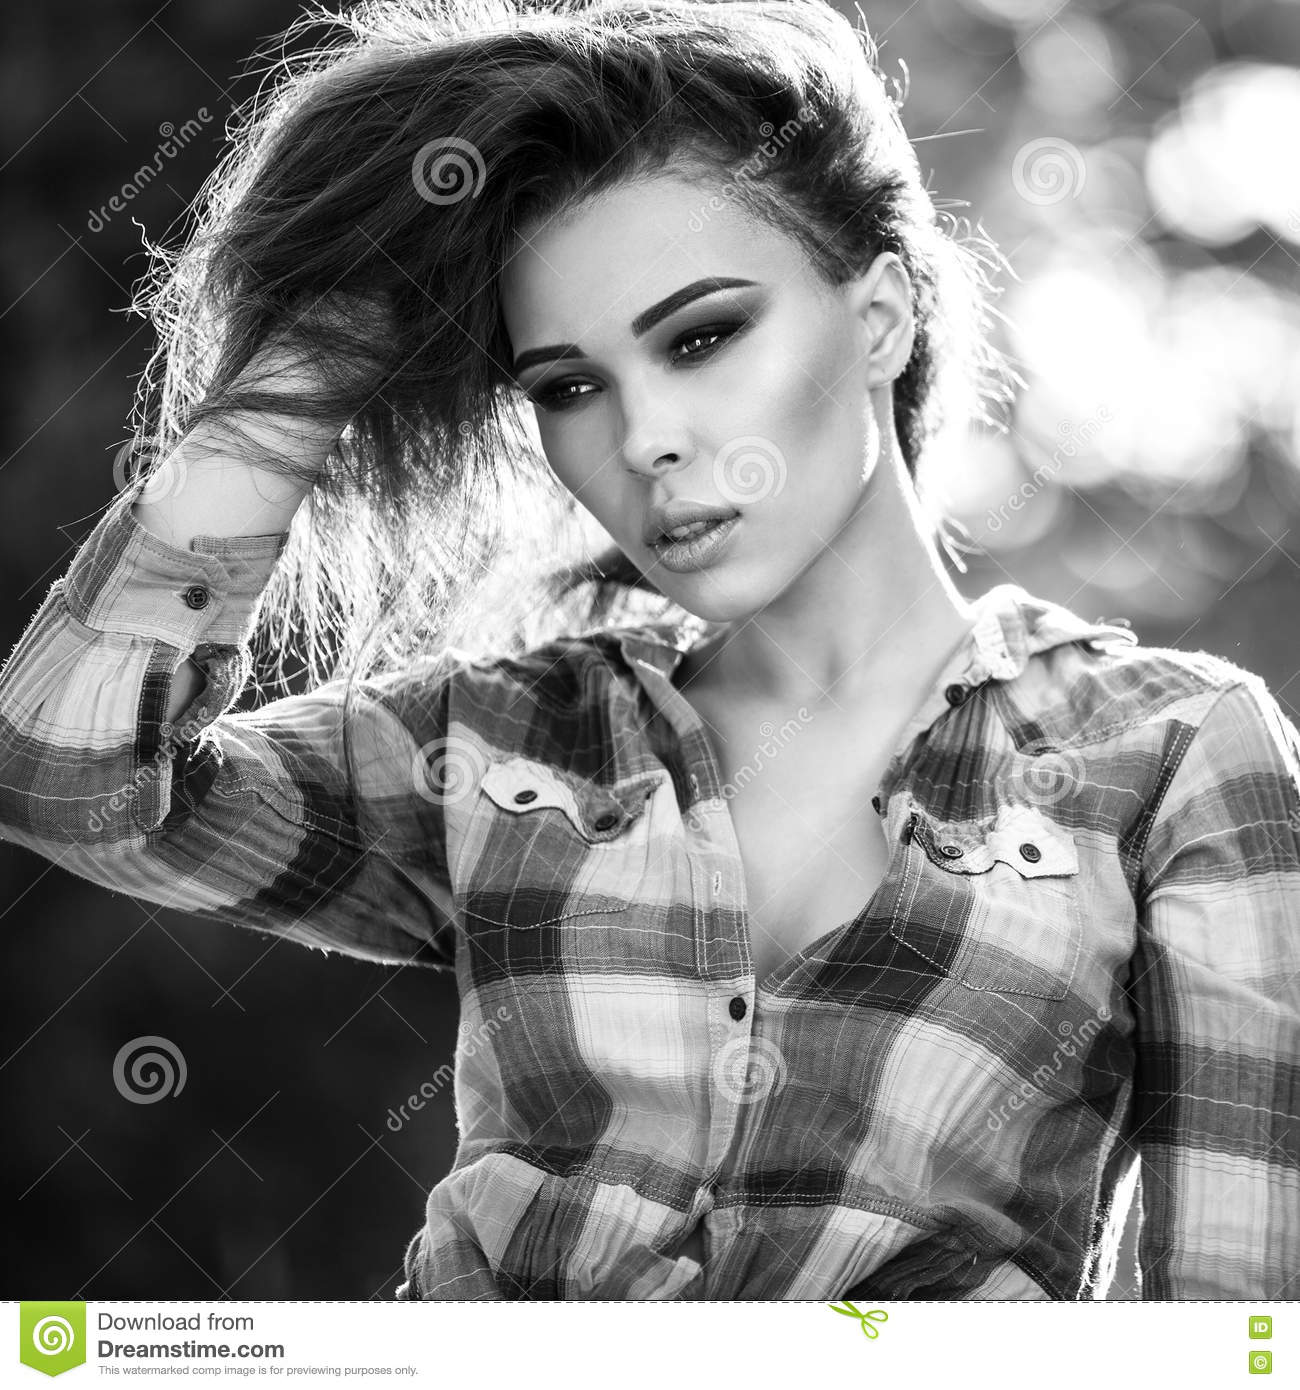 Black white outdoor portrait of beautiful woman agains nature background